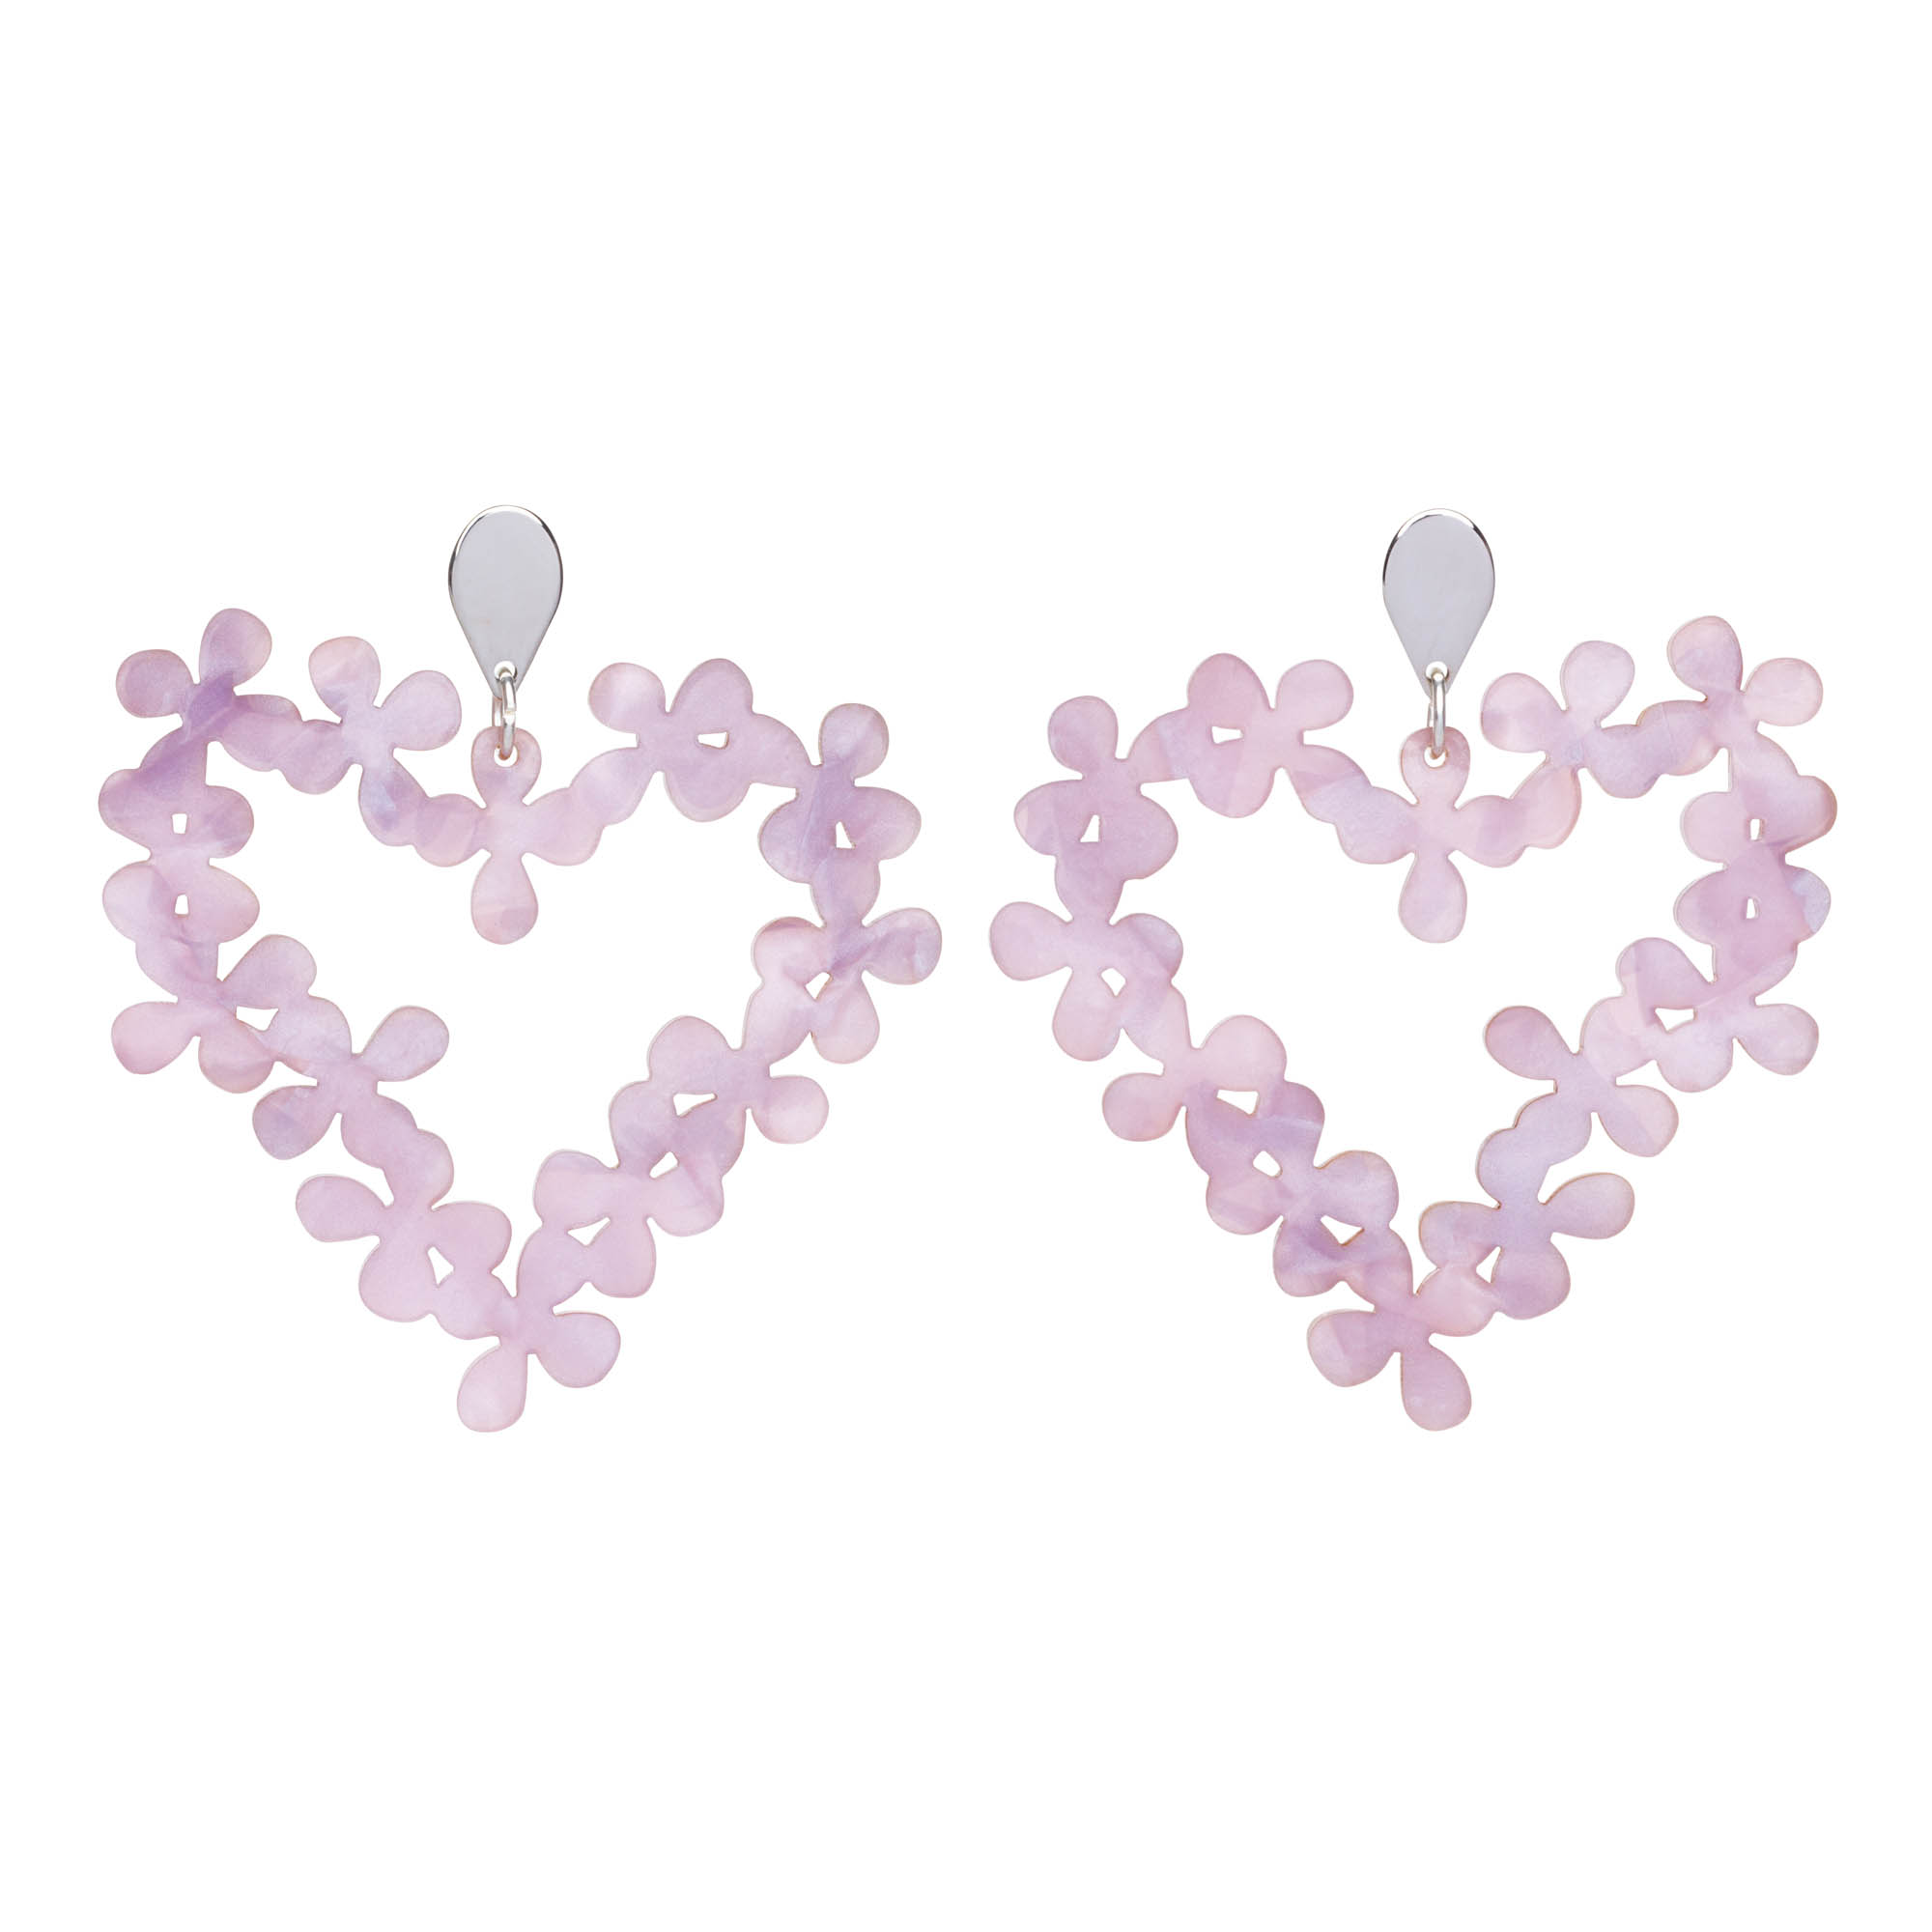 Toolally Earrings - Hearts in Flowers - Lilac Pearl